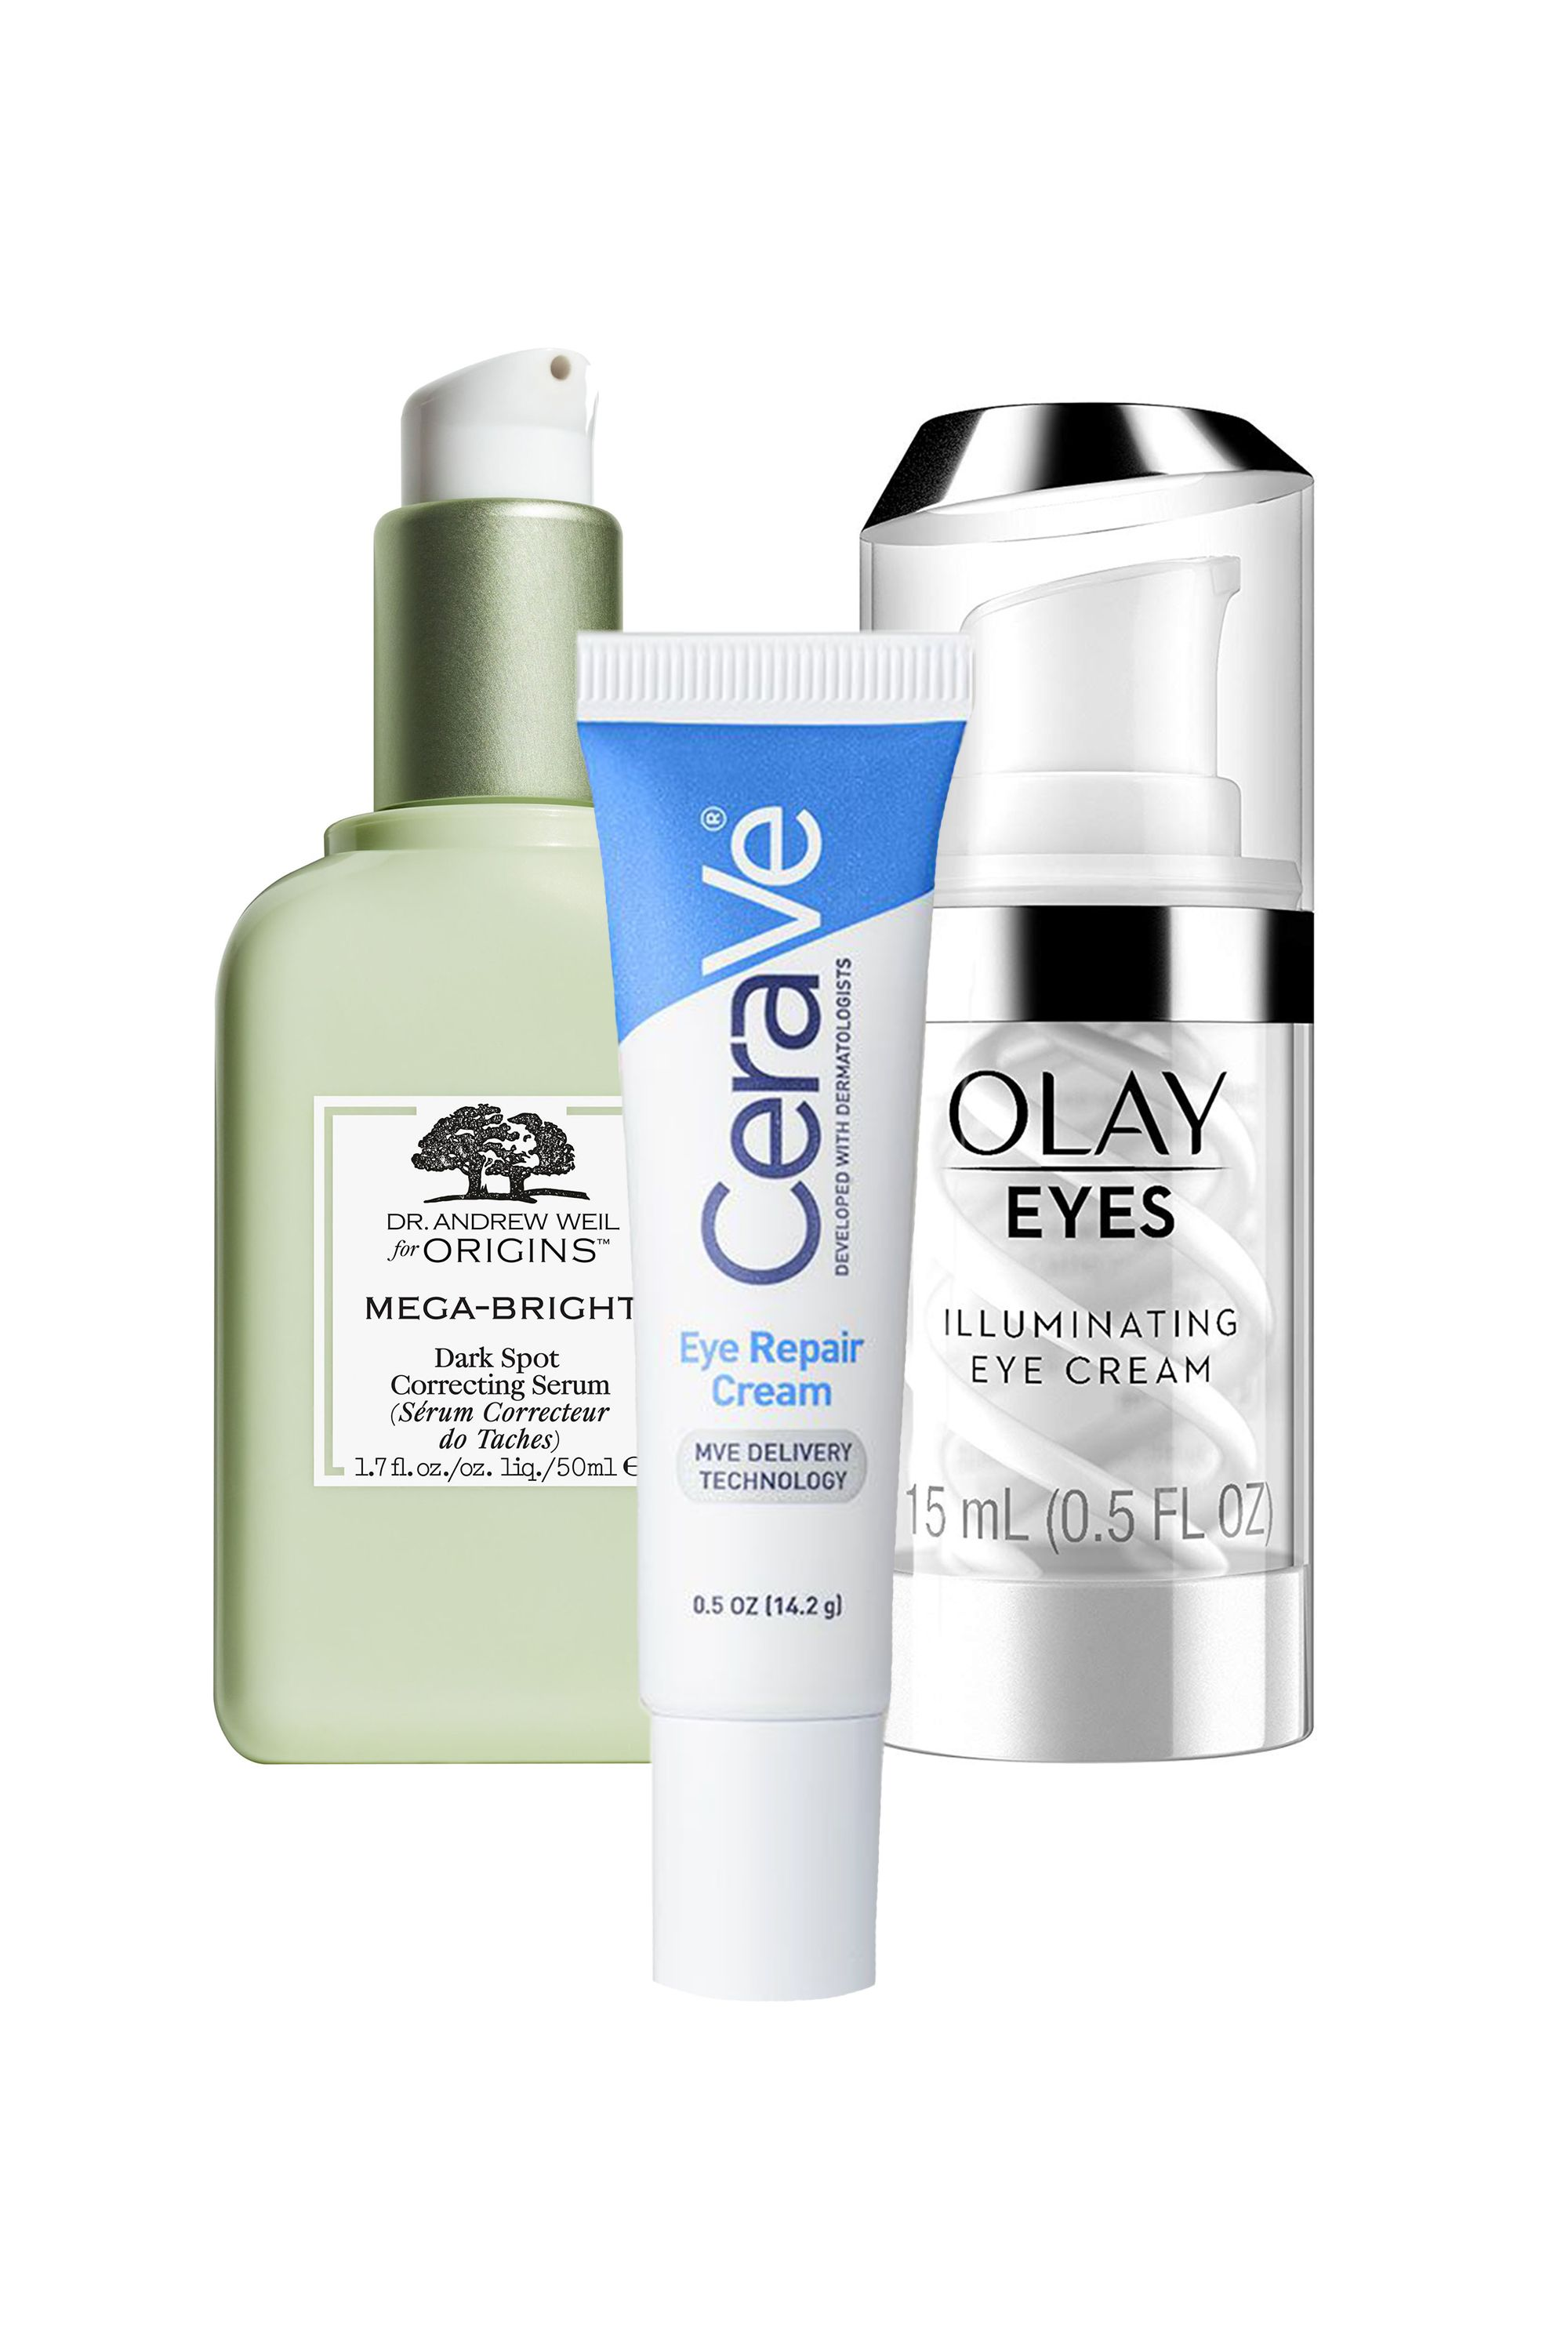 13 Best Drugstore Eye Creams - Top Creams for Crow's Feet, Puffiness